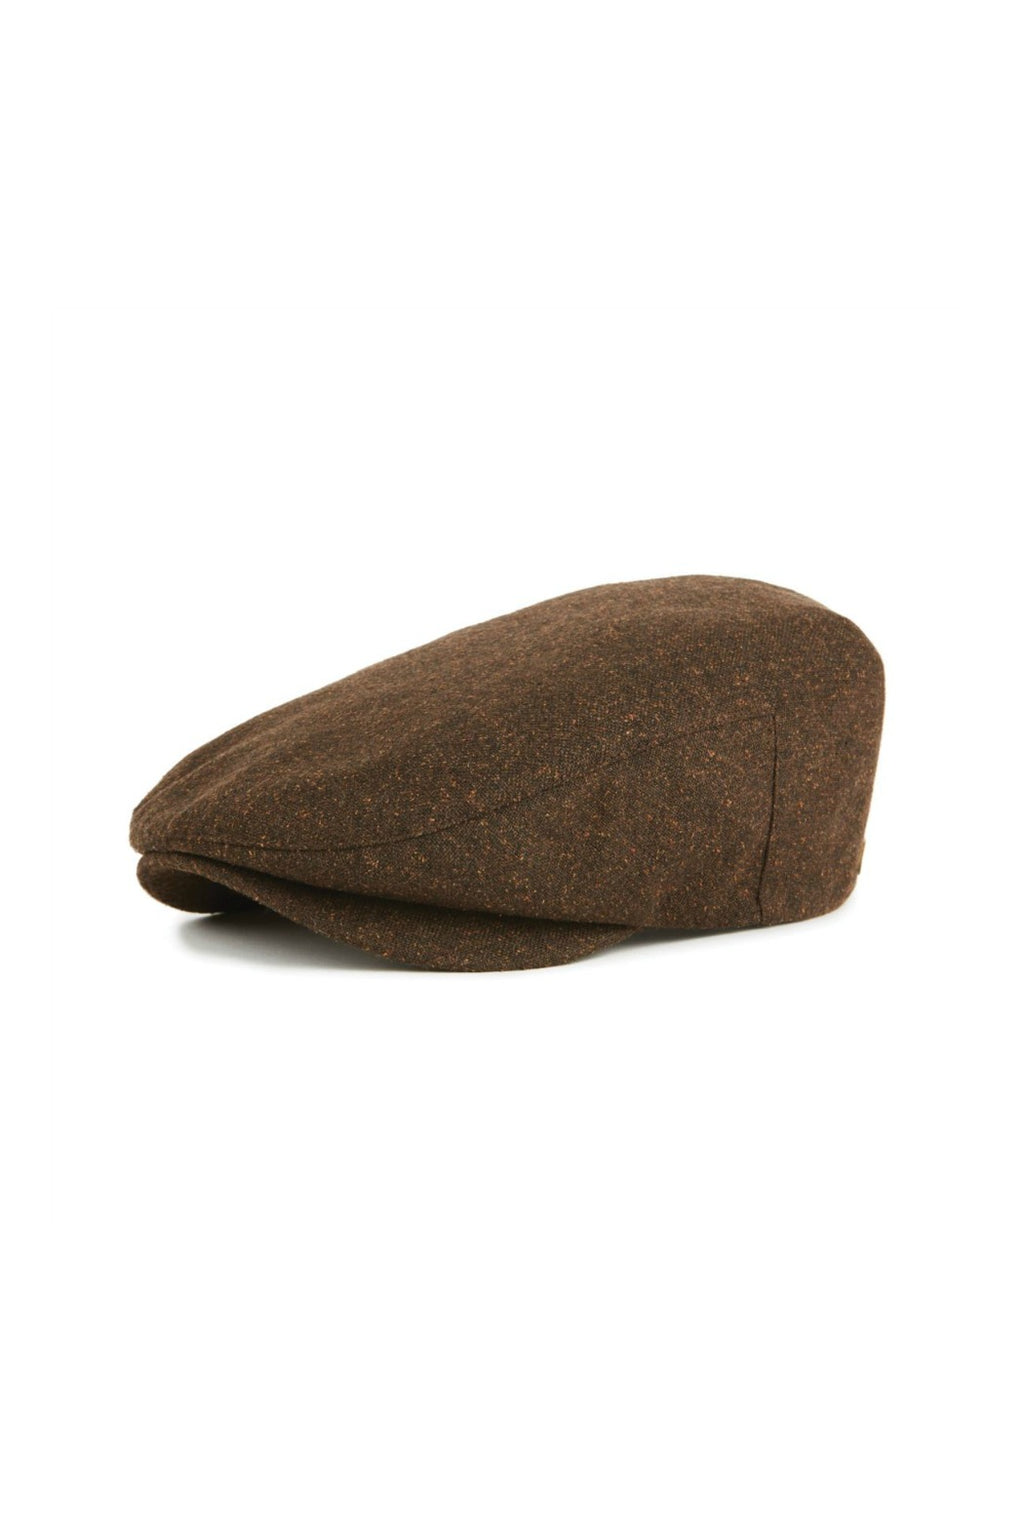 Brixton Barrel Snap Cap in Brown/Rust